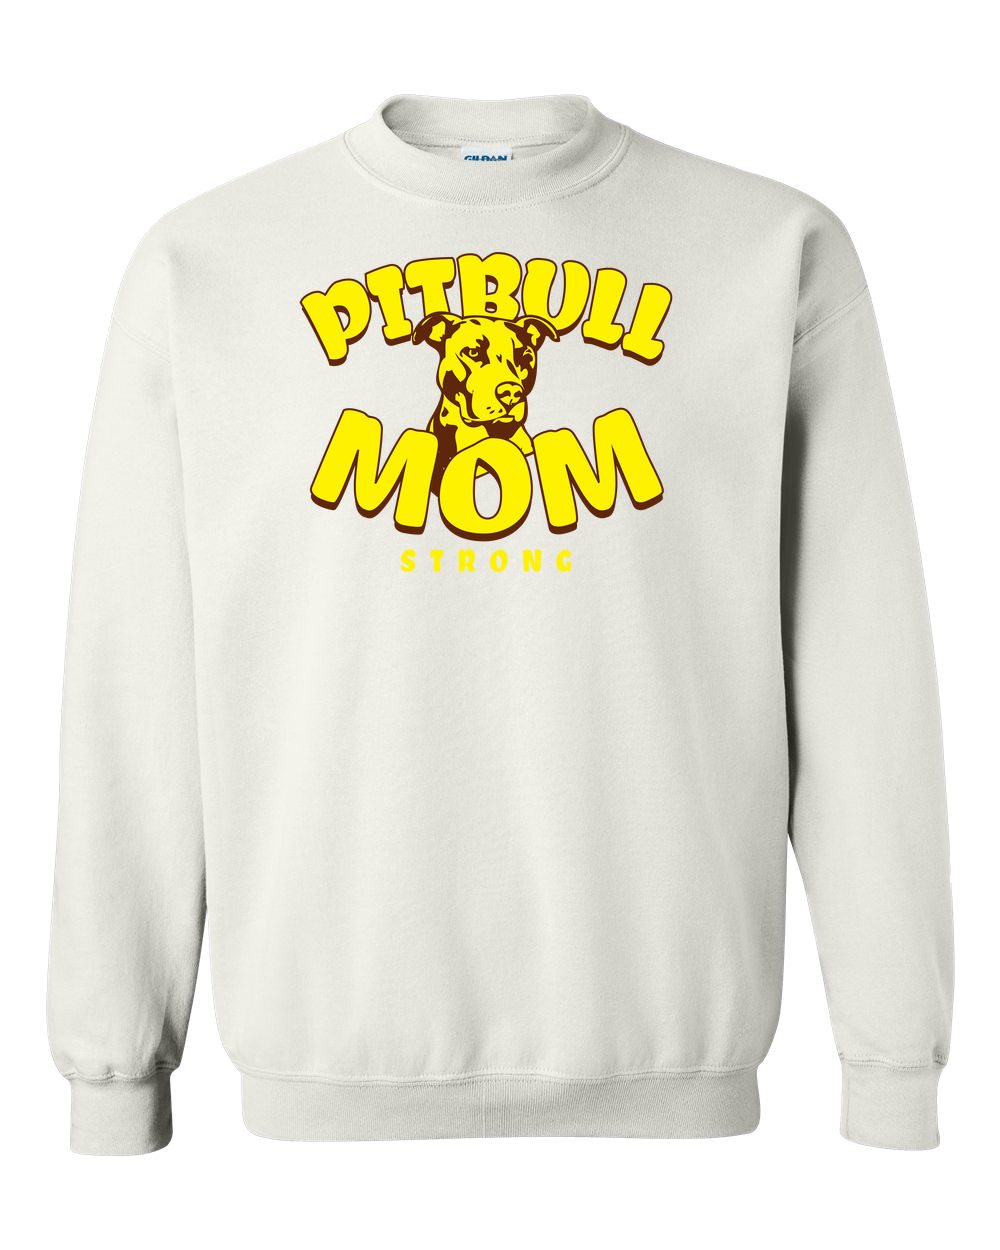 a2d95f9d Pit Bull Mom Strong Adult Crewneck Sweat Shirt | Products ...